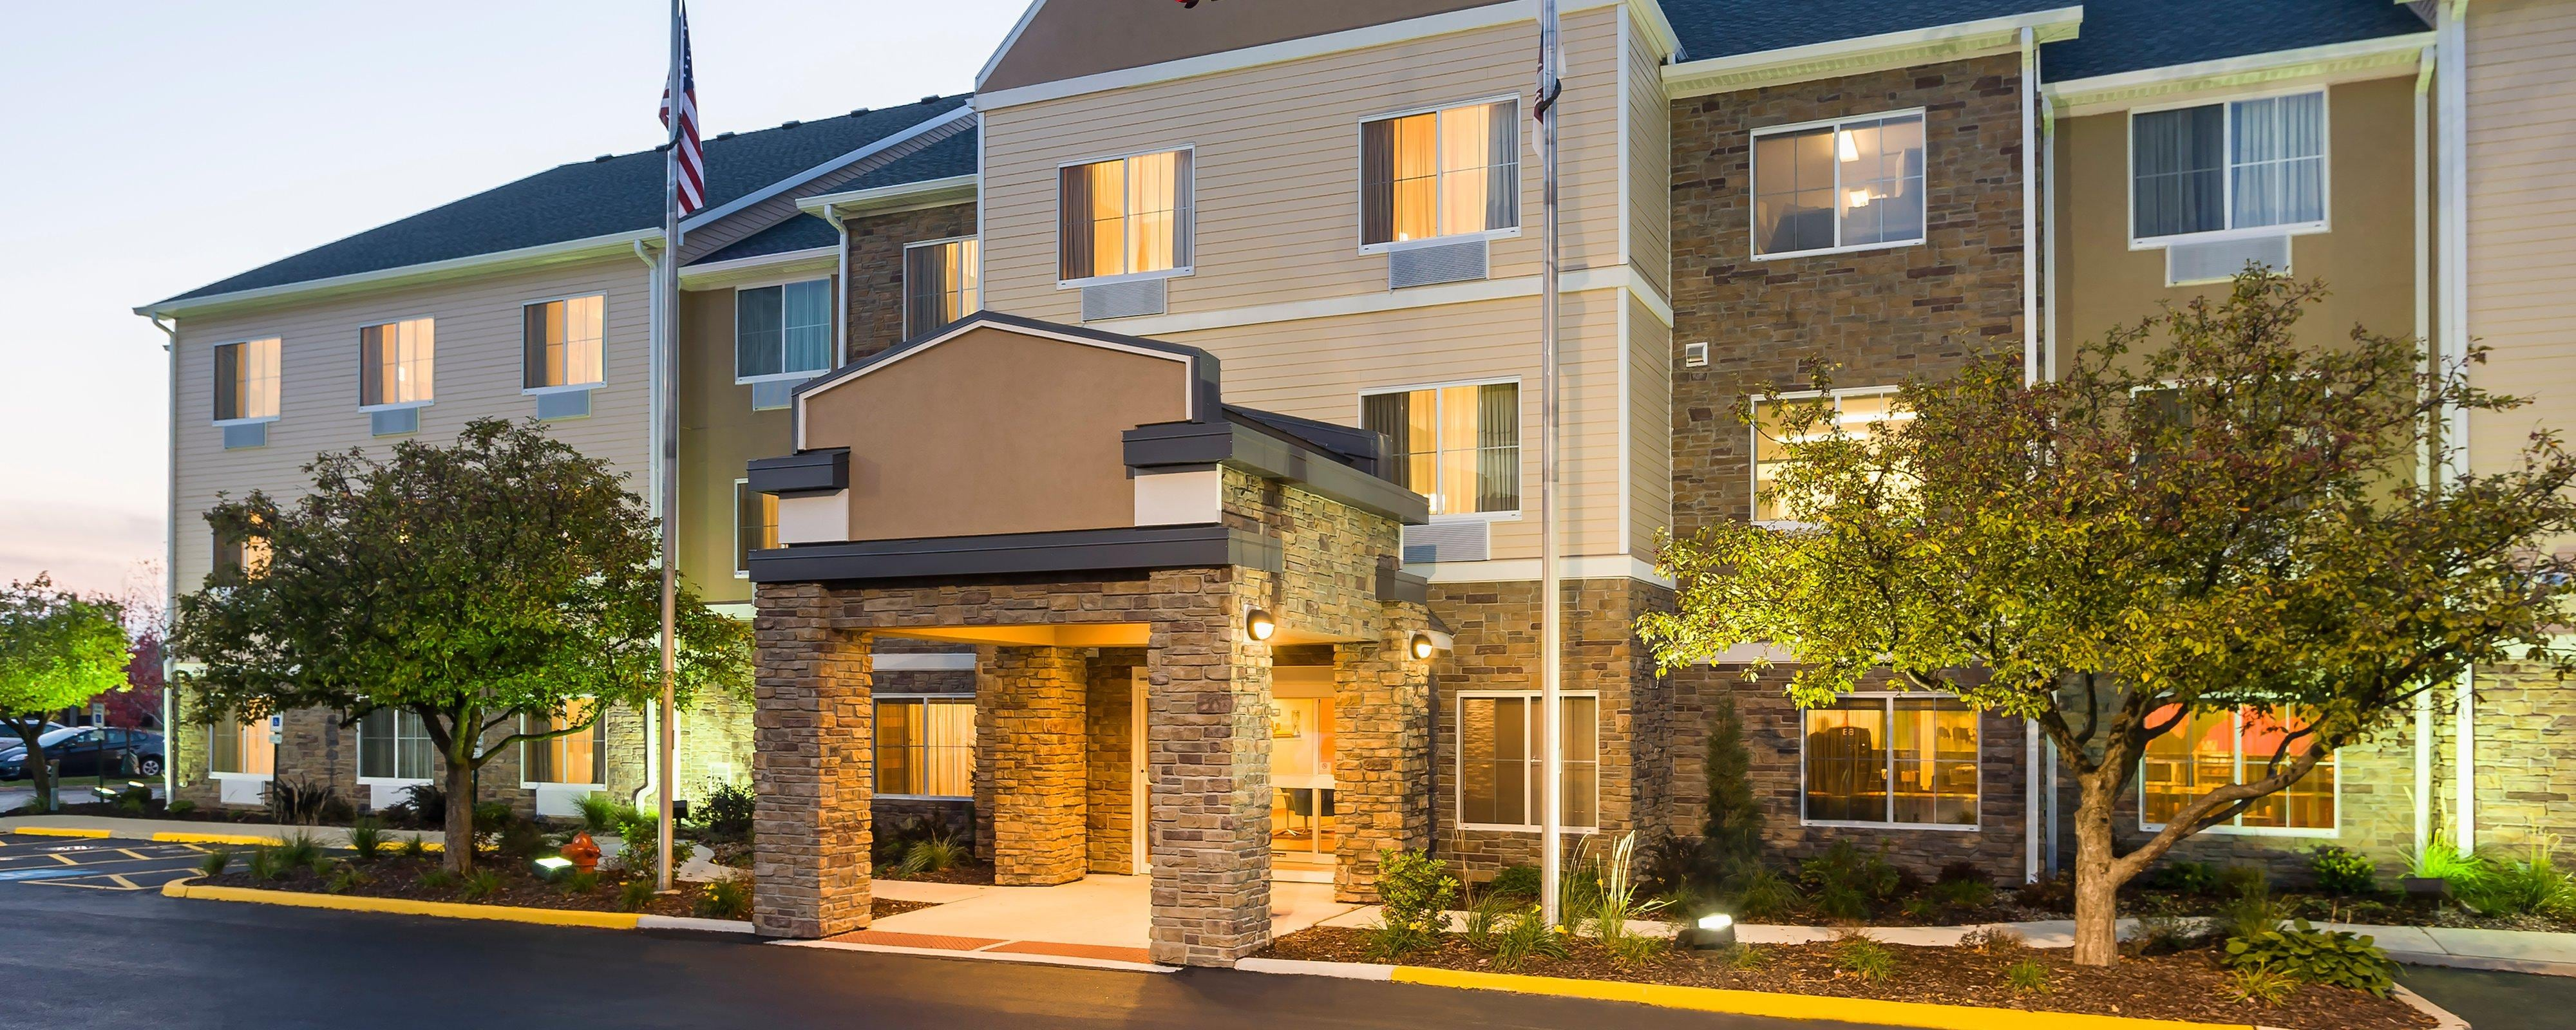 hotels in naperville il fairfield inn suites chicago. Black Bedroom Furniture Sets. Home Design Ideas